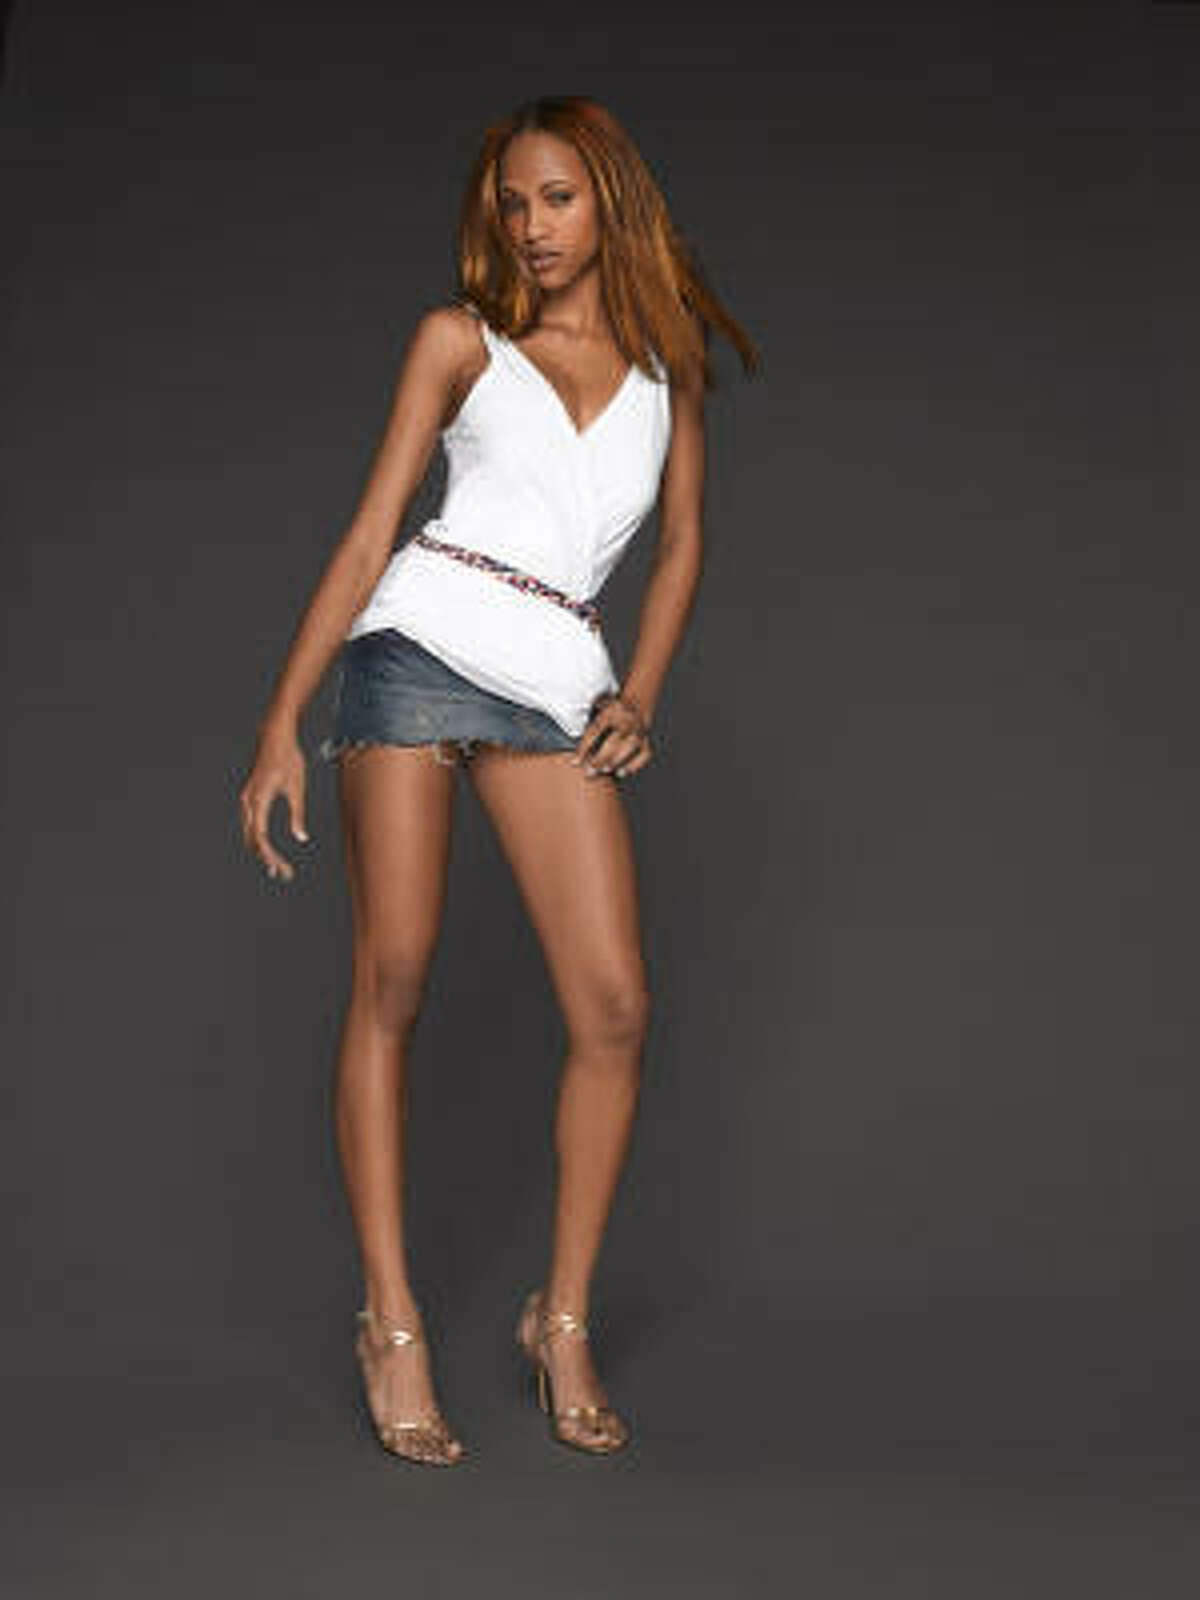 Felicia, 19, a sales associate from Houston, is vying to become America's next top model.